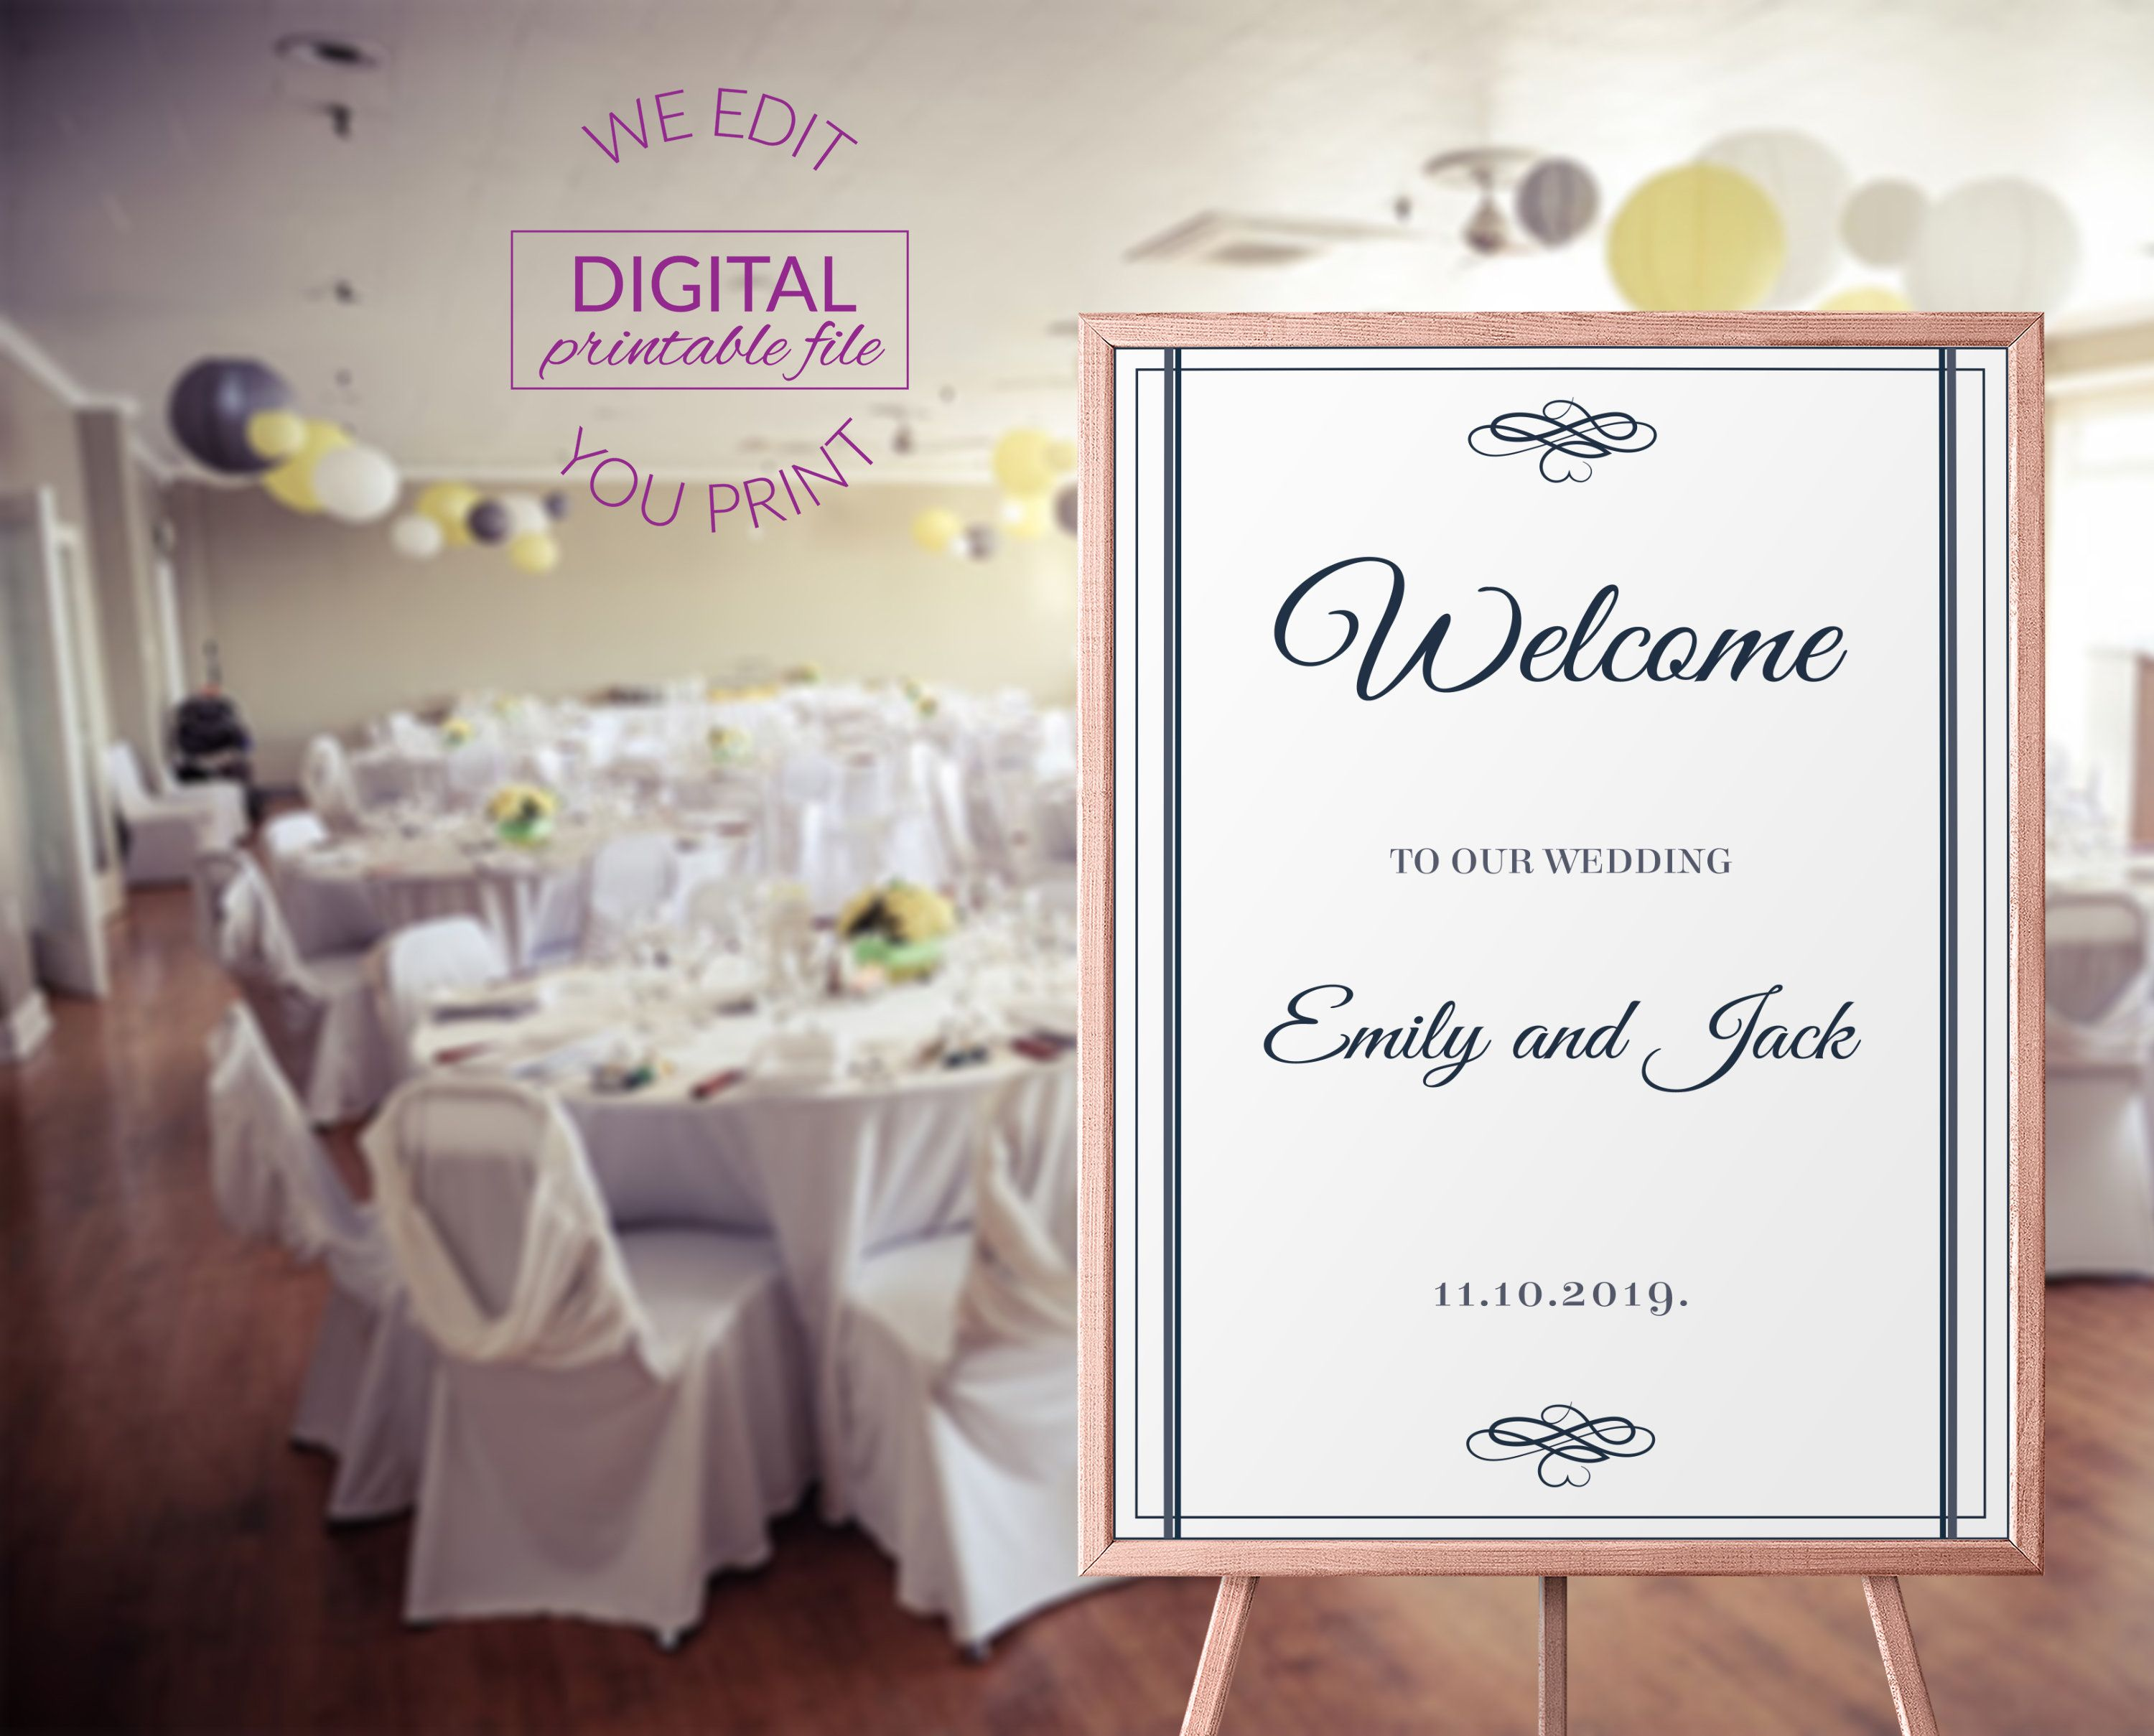 Elegant Welcome Wedding Sign Simple Welcome Sign Printable Elegant Wedding Sign Printable Simple Welcome Wedding Sign PDF ED-W6